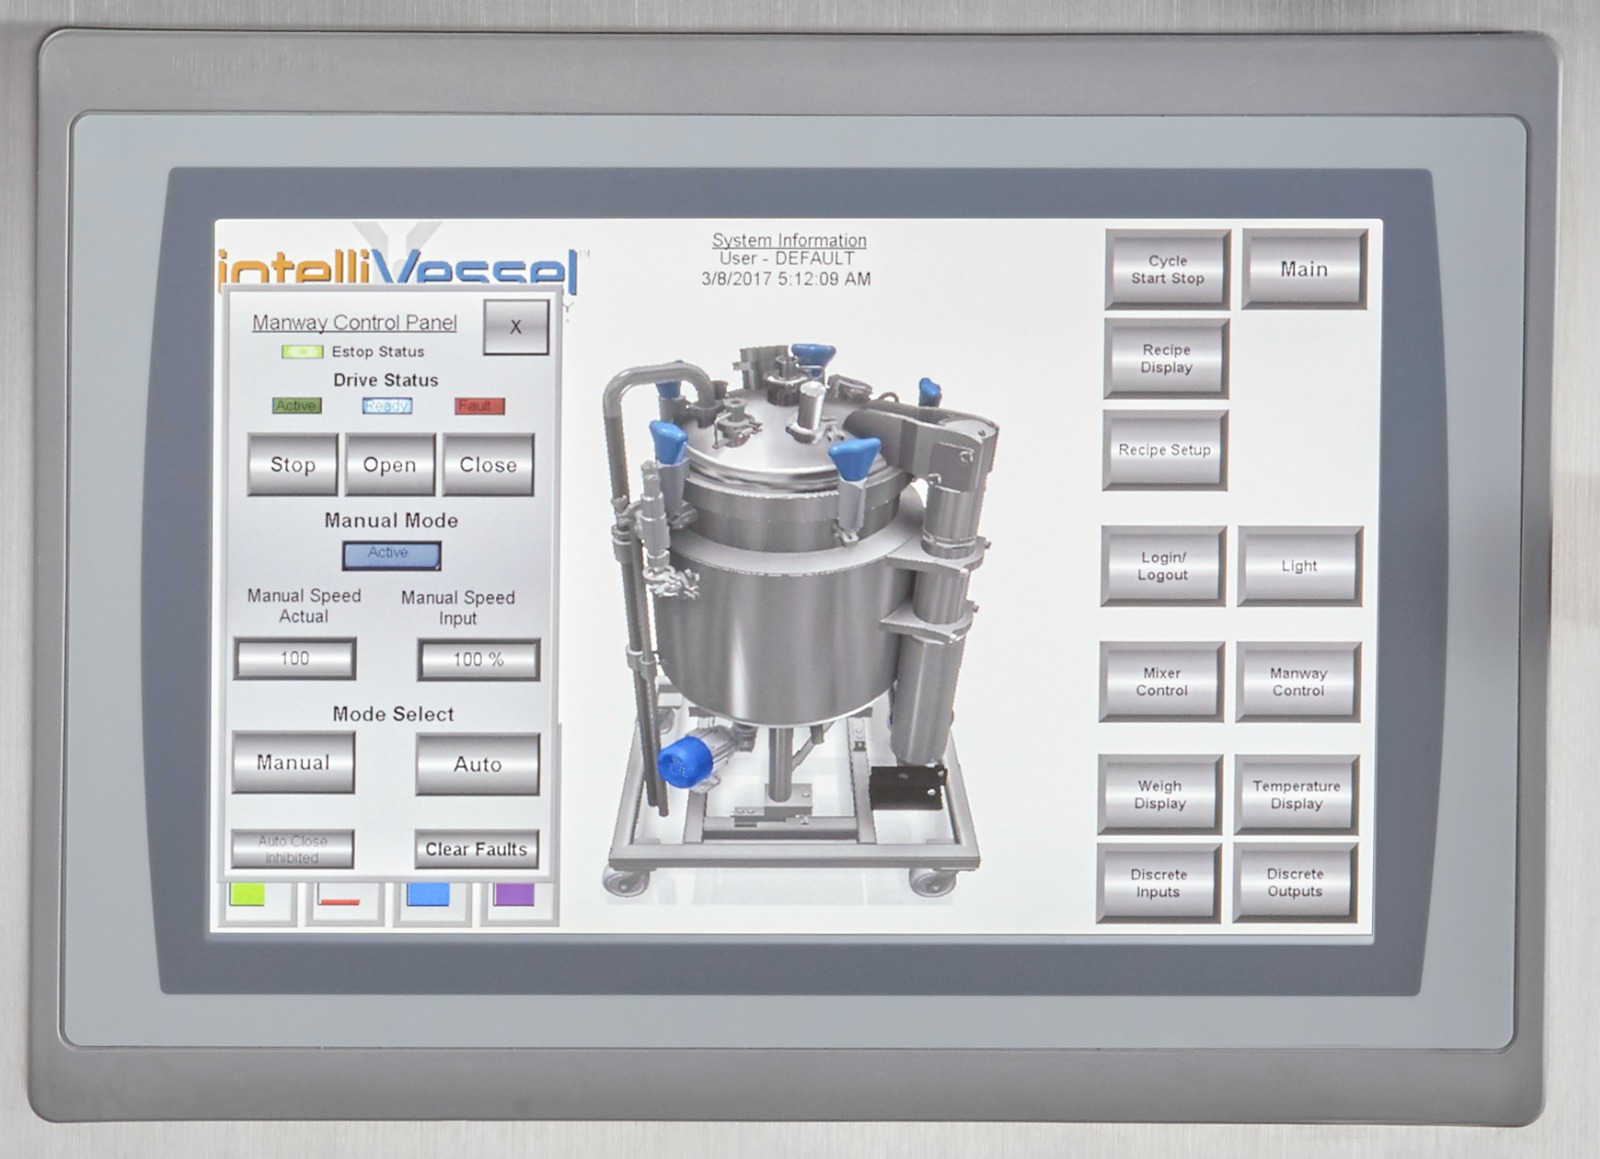 HOLLOWAY's stainless steel tank design for The intelliVessel™ is a first for smart tank technology.